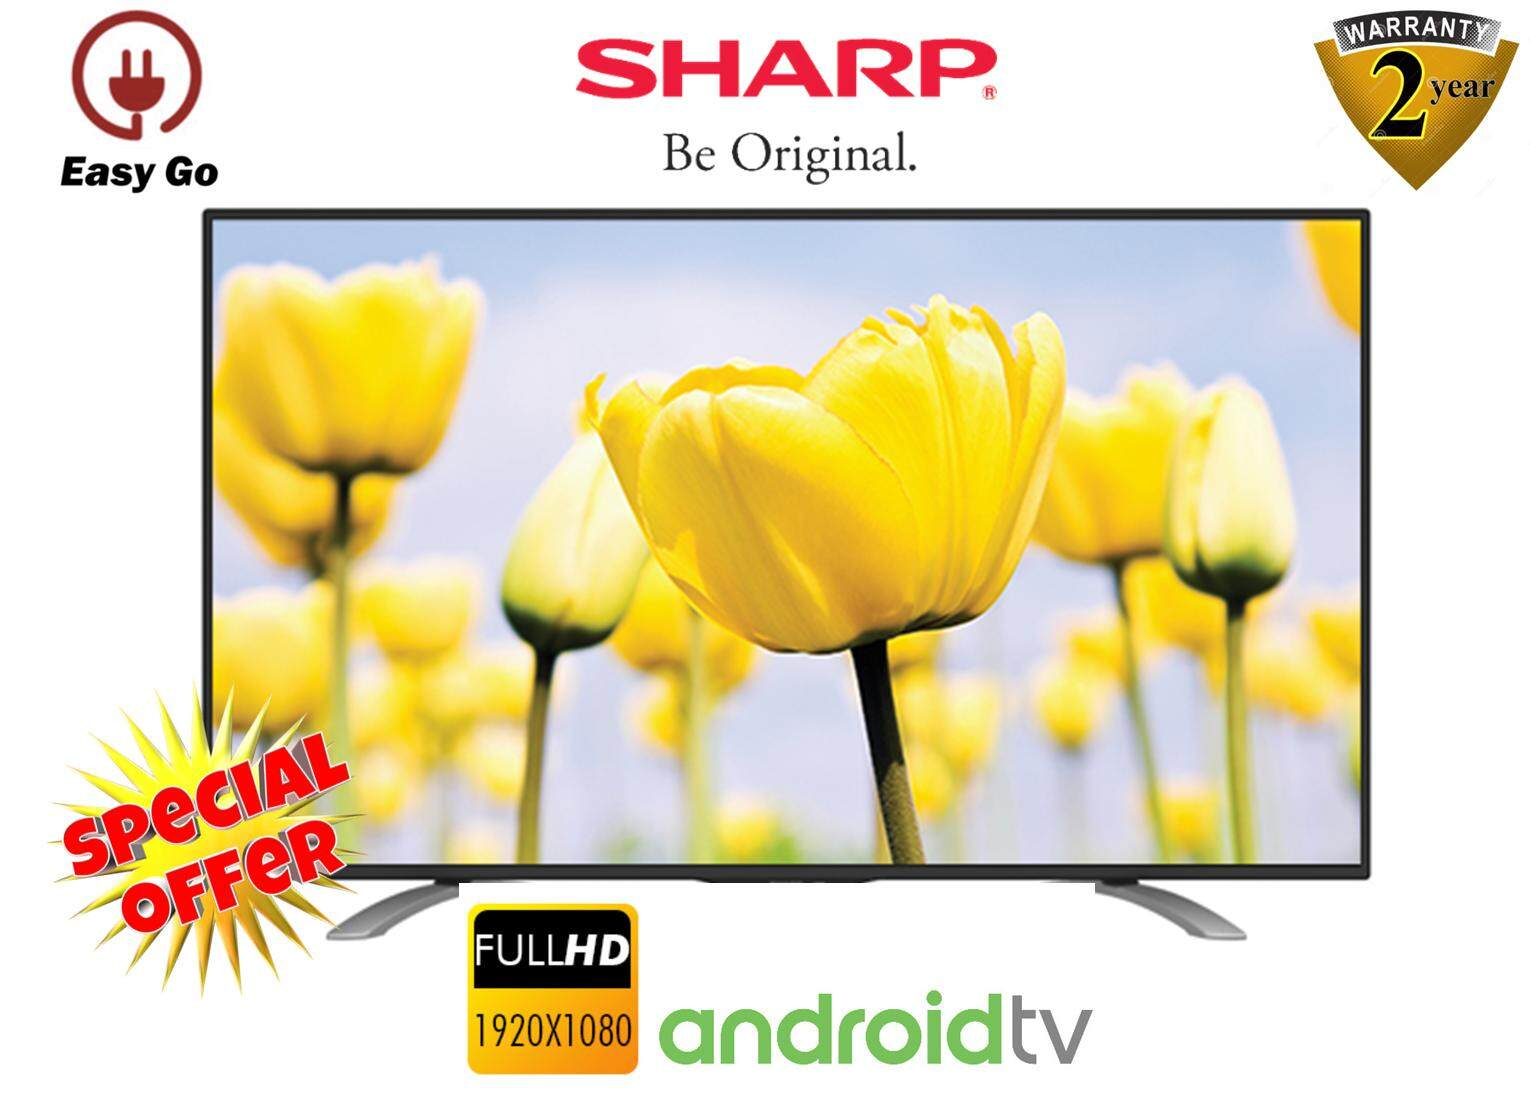 Sharp Led Televisions Price In Malaysia Best Aquos Tv 40 Inch Lc 40sa5100i Usb Movie 50 Full Hd Smart Android Lc50le580x